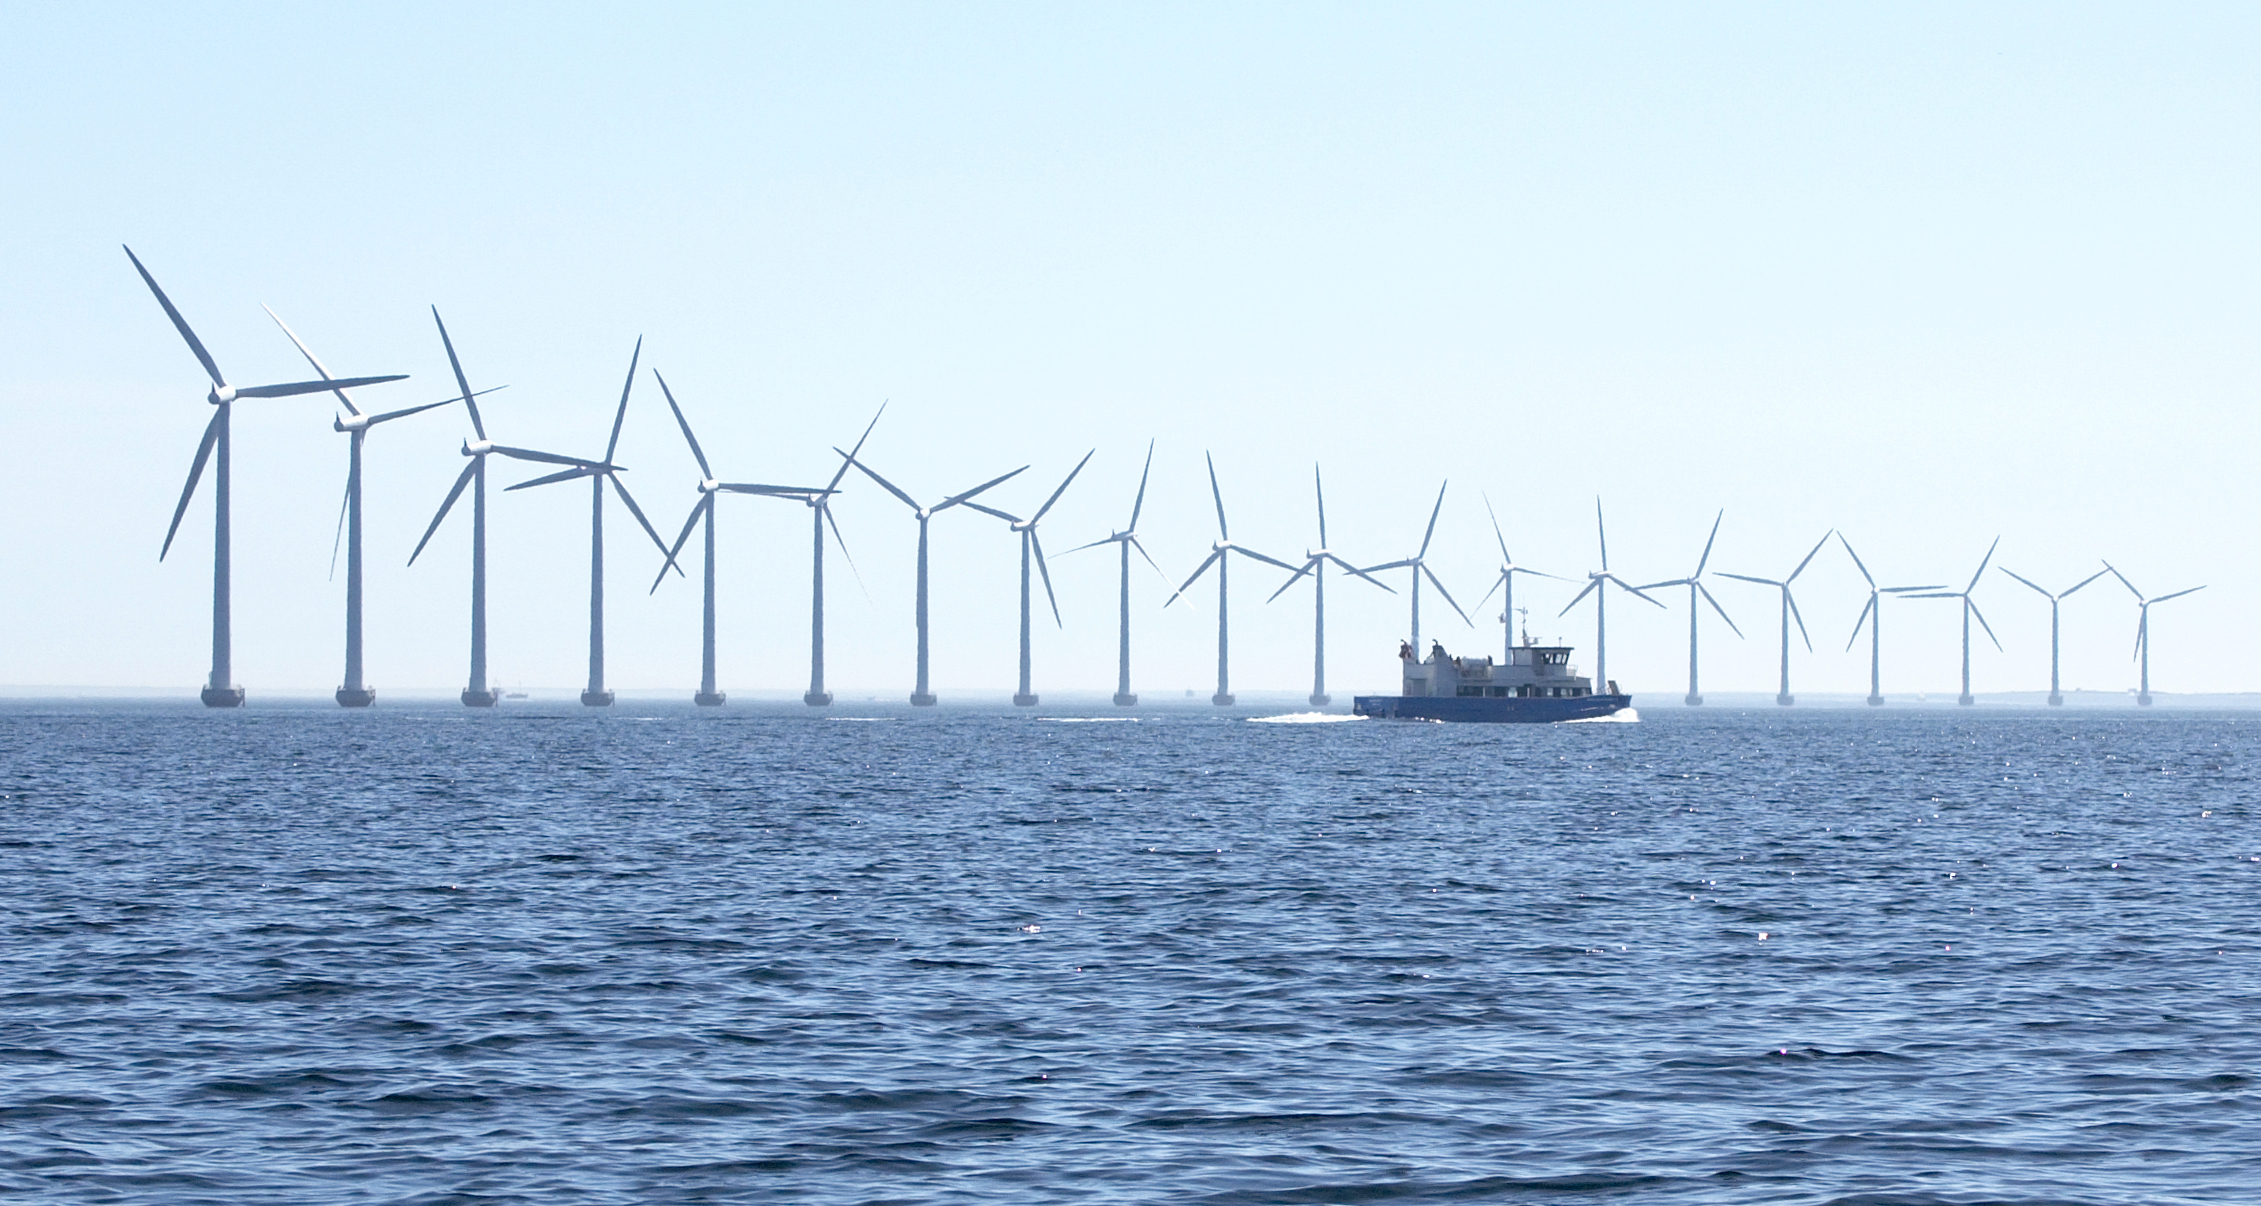 UK leads G20 for share of electricity sourced from wind